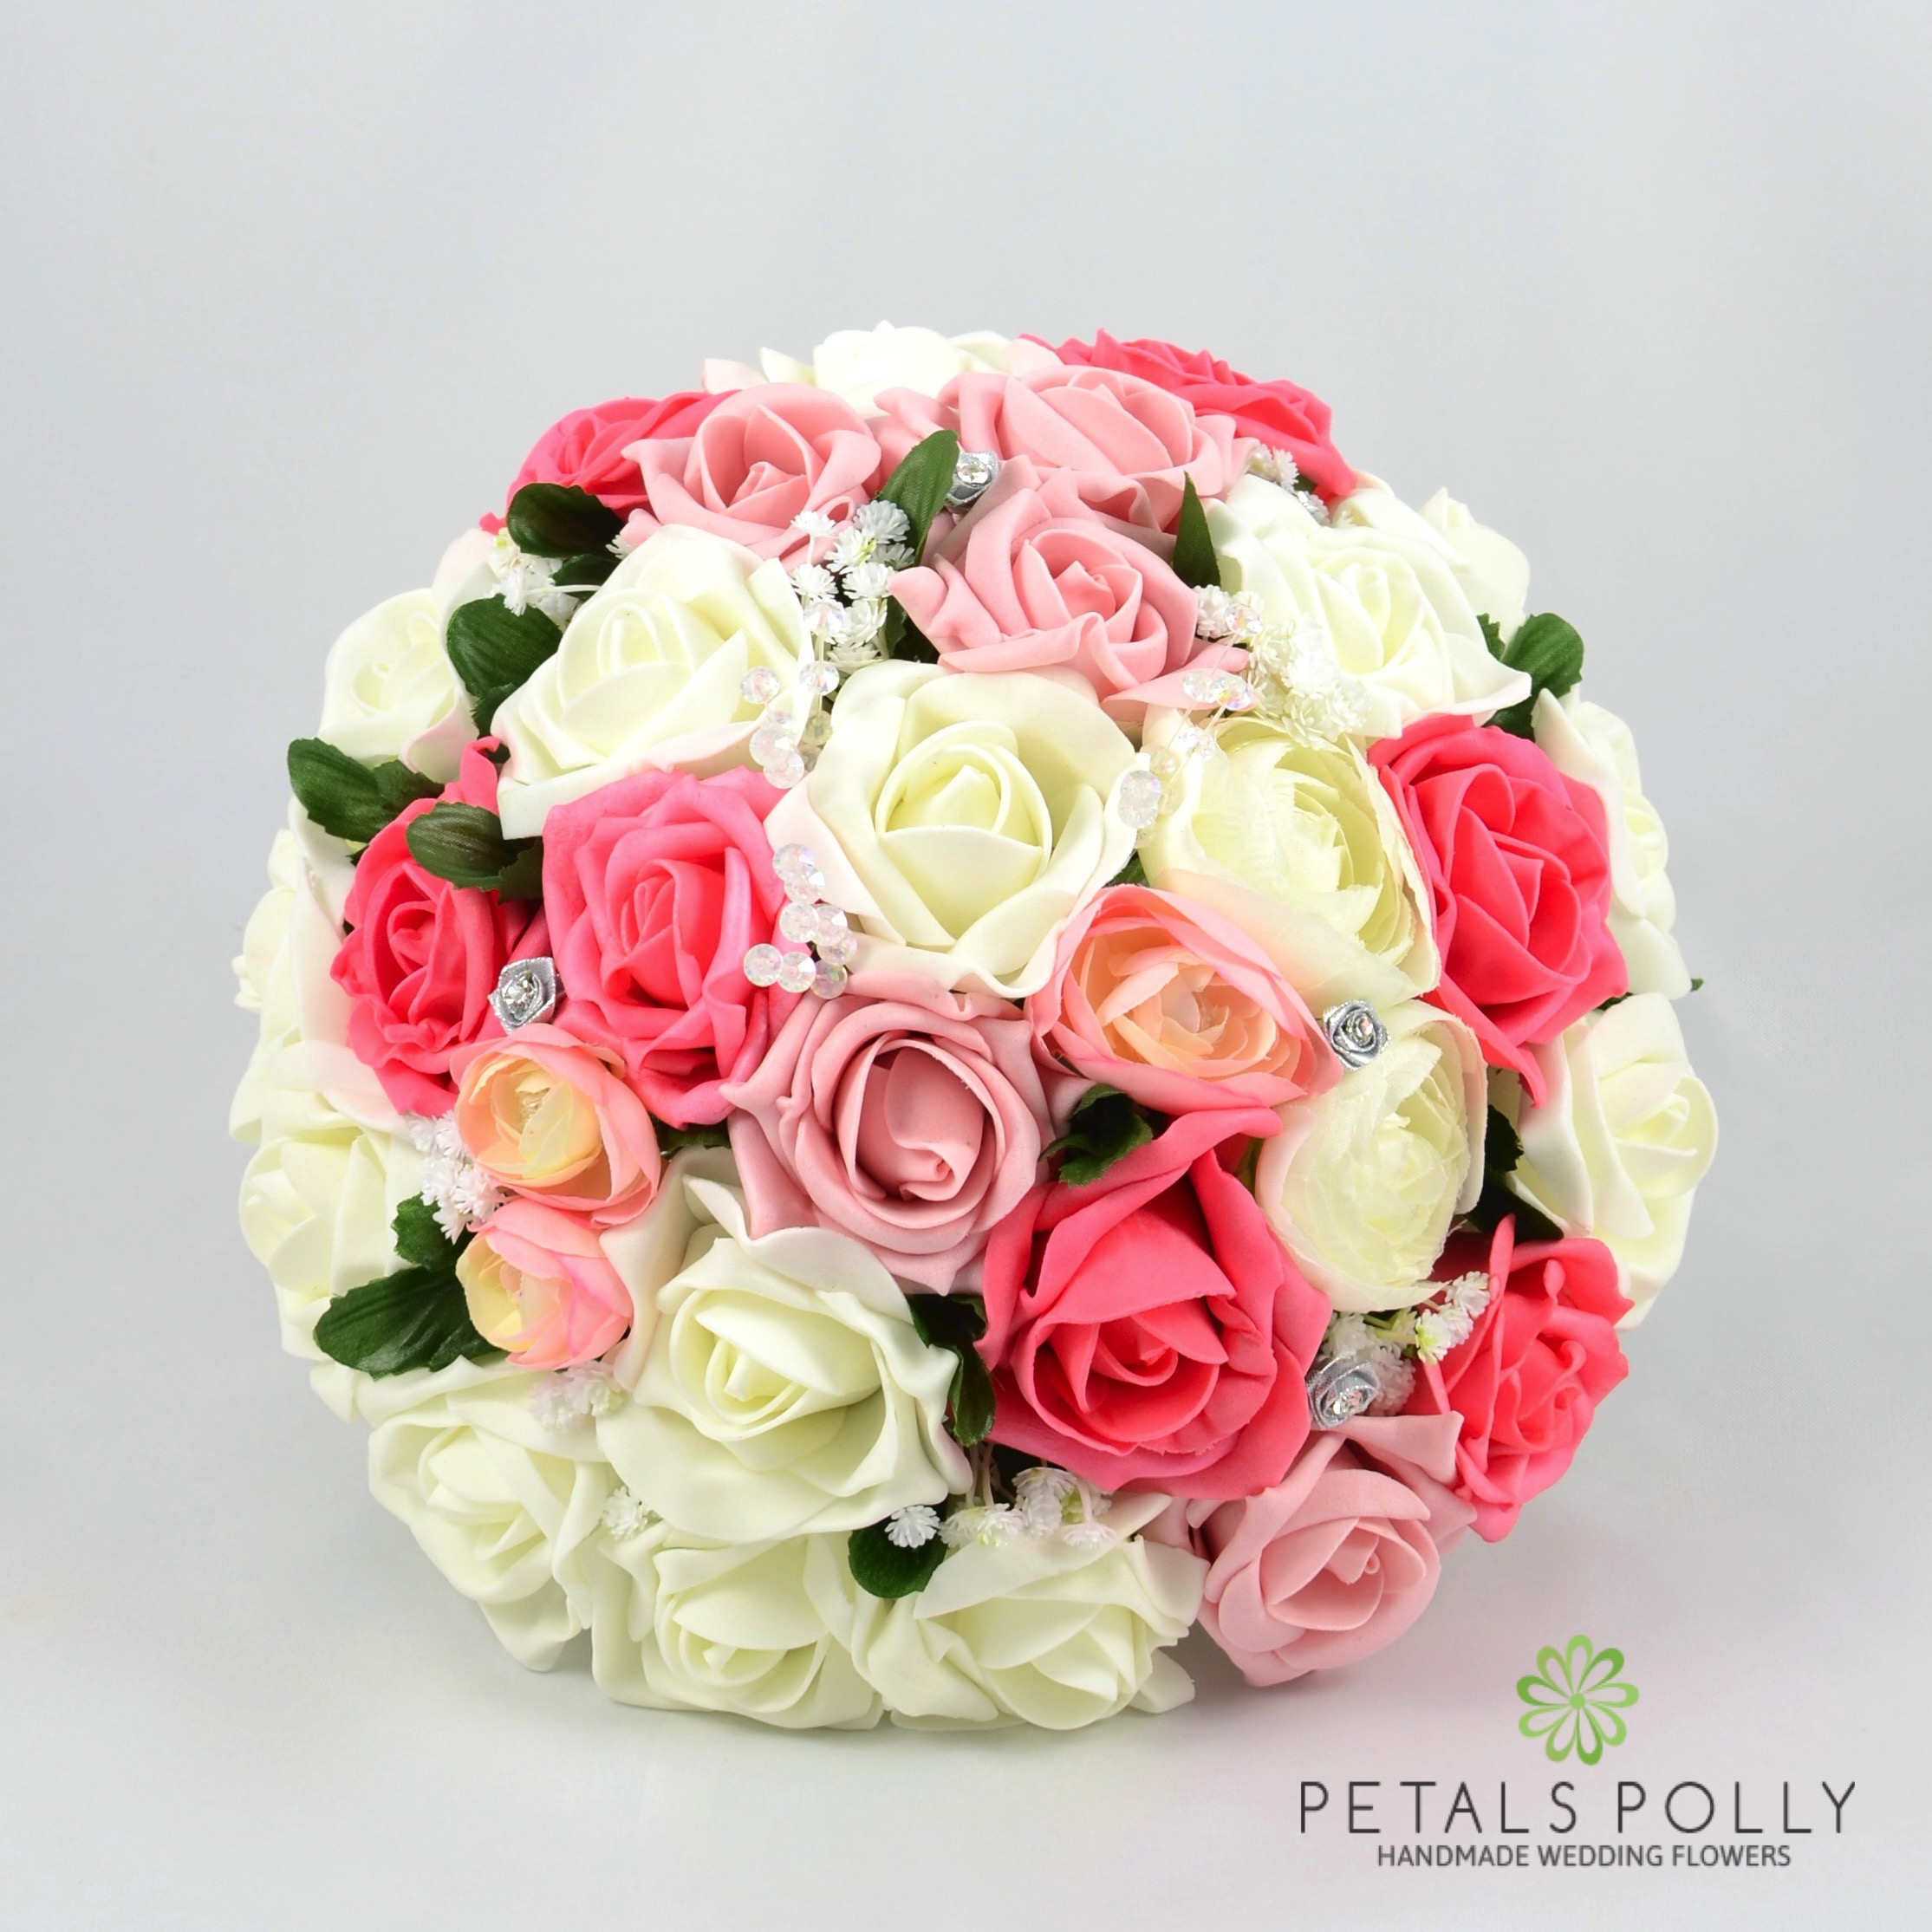 Antique Pink Coral Ivory Rose Brides Posy With Ranunculus